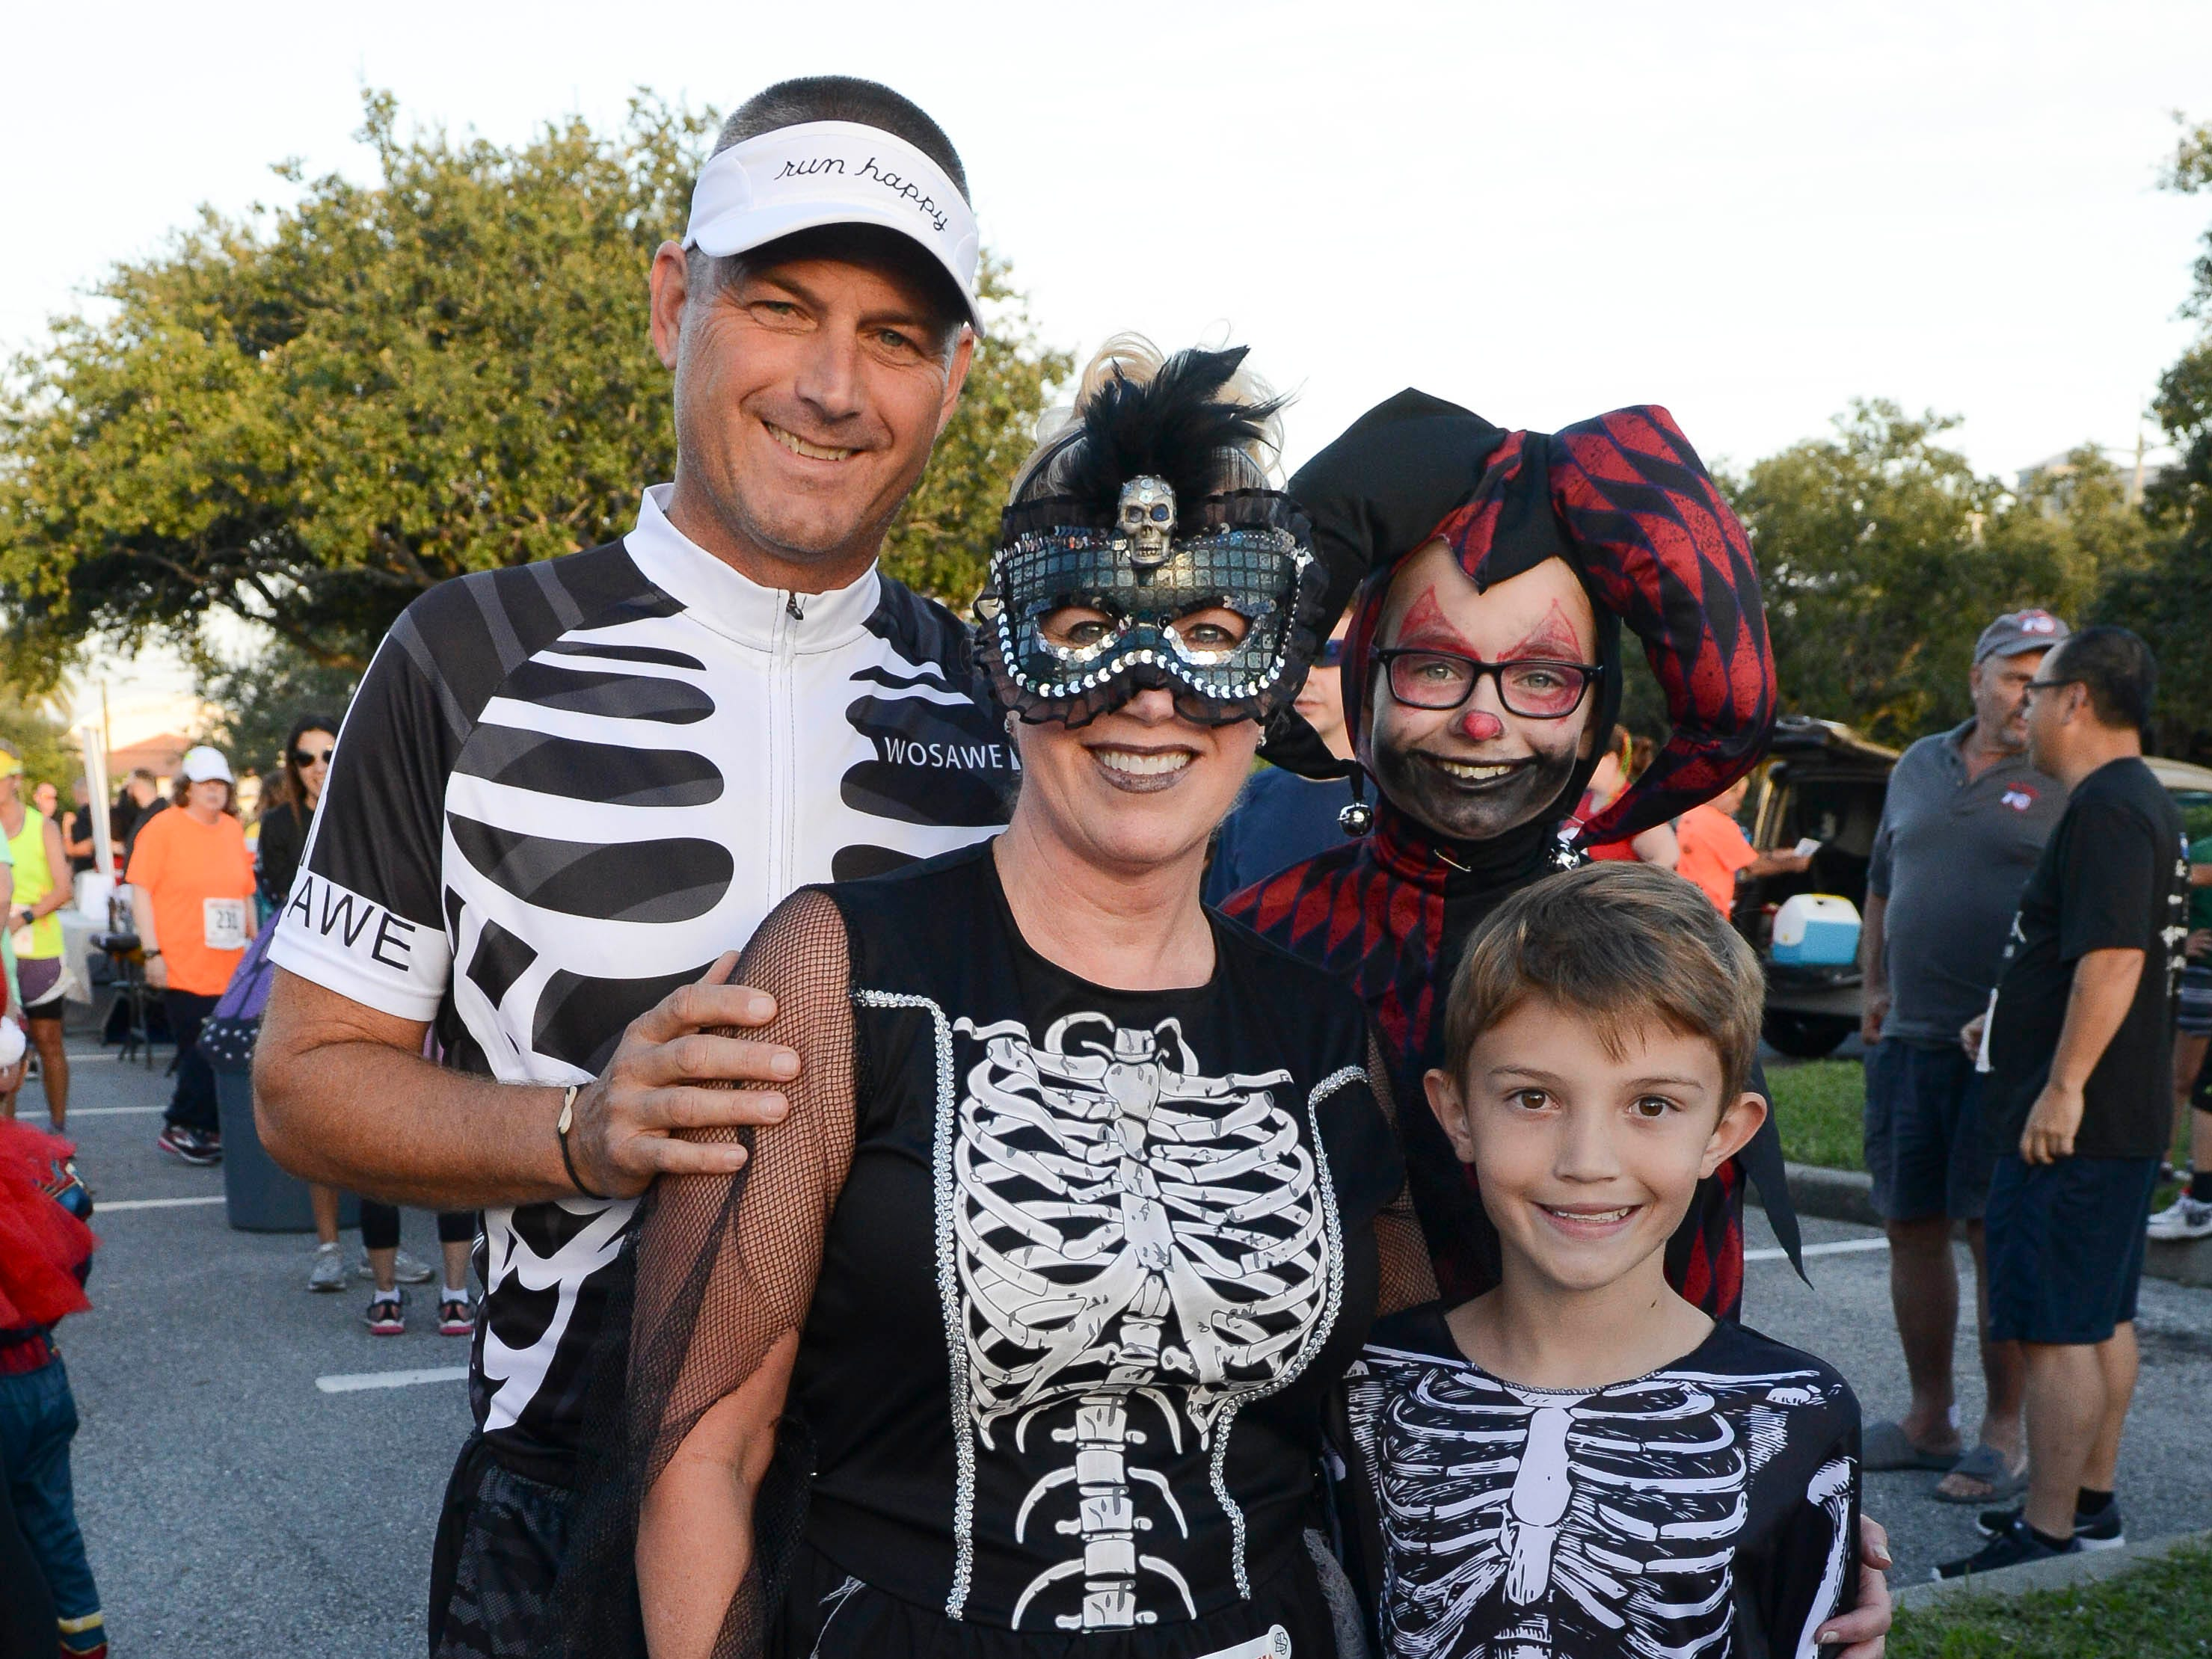 Matt, Tami, Tori and Clay Wrasmann, participants in the Ghostly Gecko 5K dressed in costume for the annual race right before Halloween.